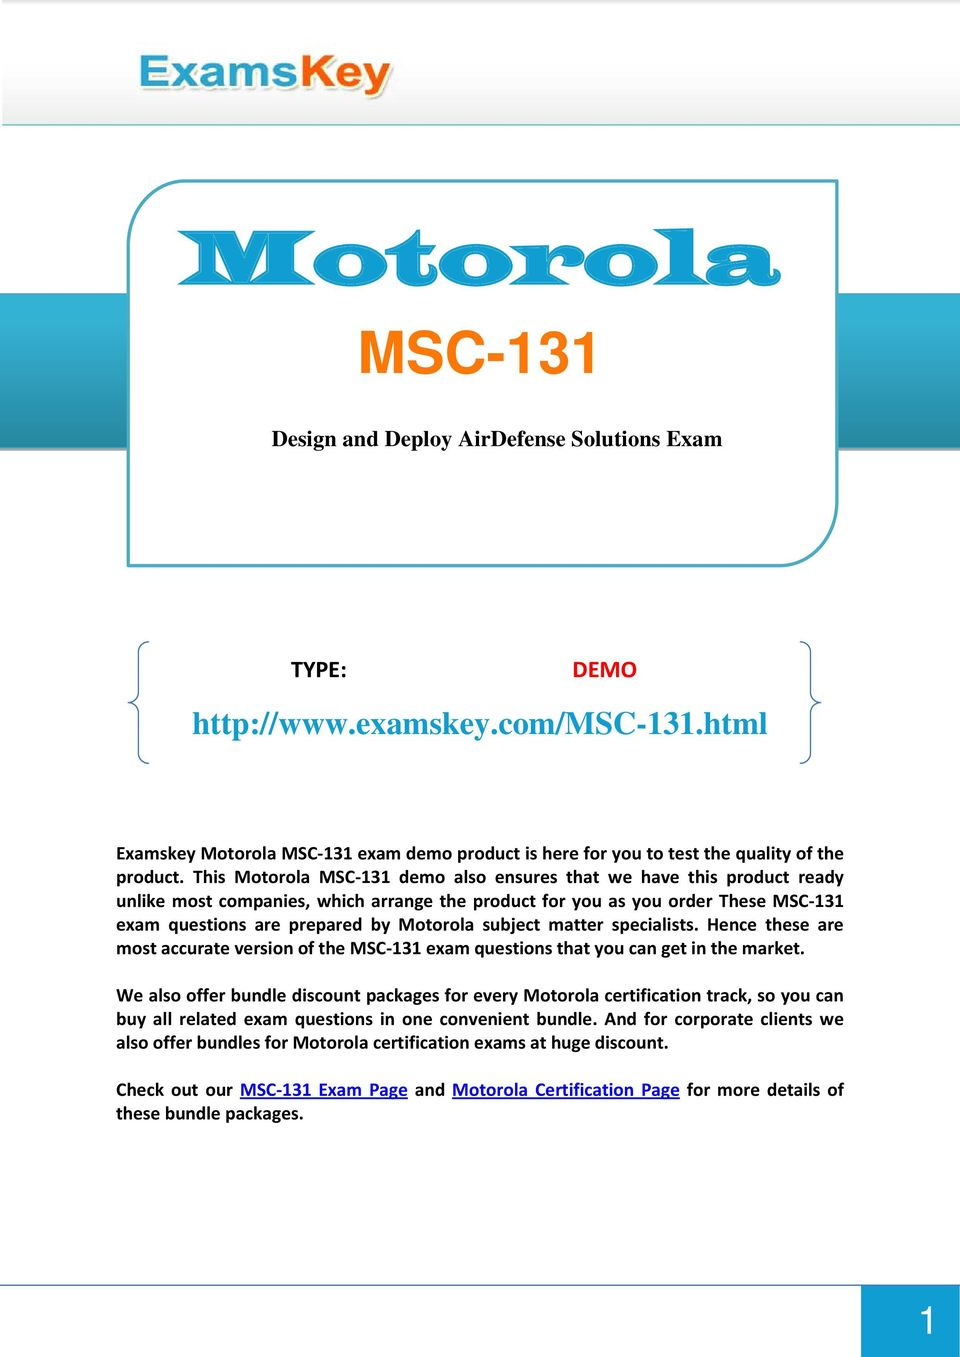 This Motorola MSC-131 demo also ensures that we have this product ready unlike most companies, which arrange the product for you as you order These MSC-131 exam questions are prepared by Motorola